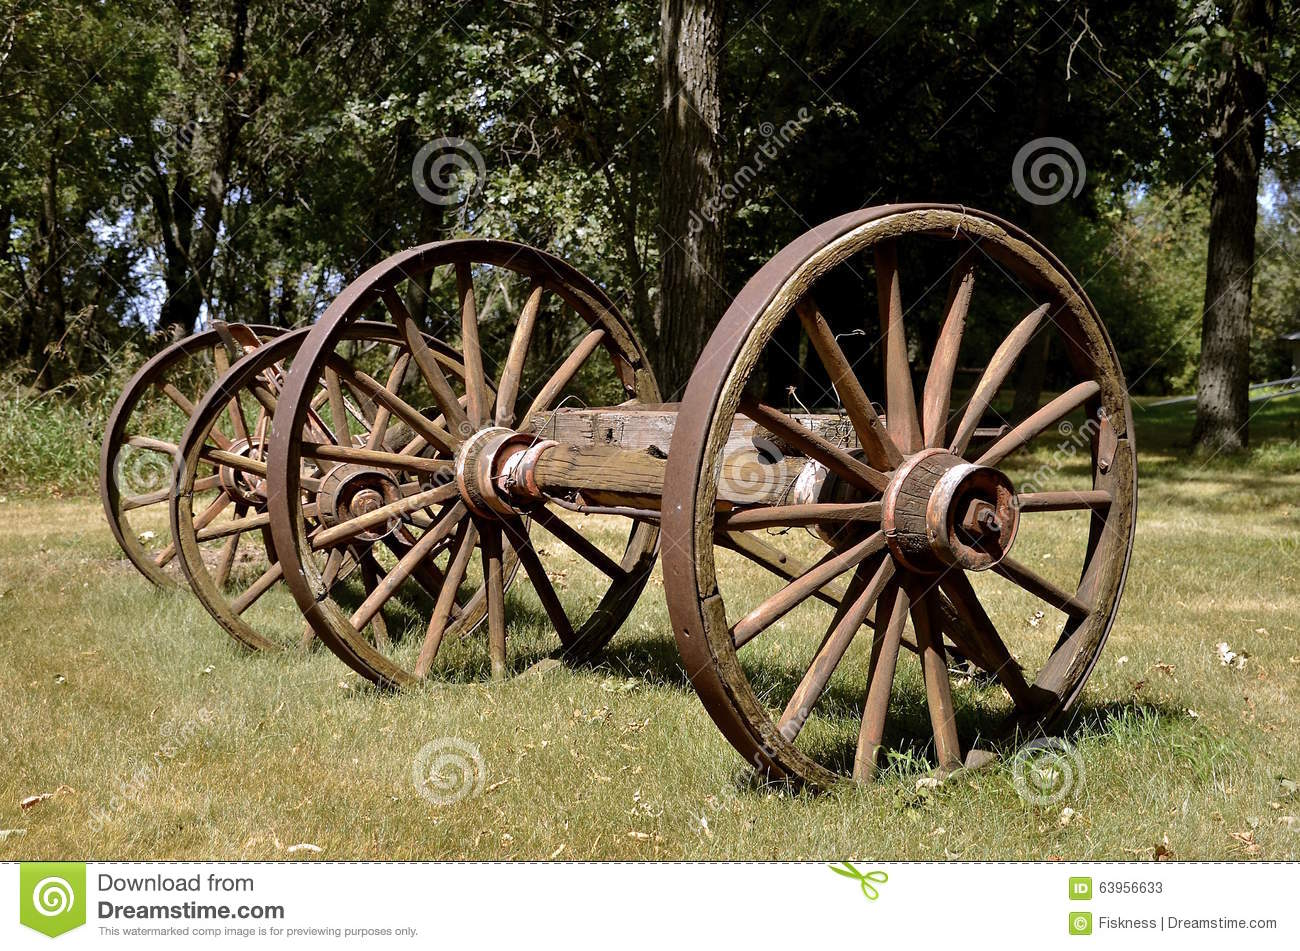 Old Wood Wagon Wheels Stock Image. Image Of Wooden, Axle